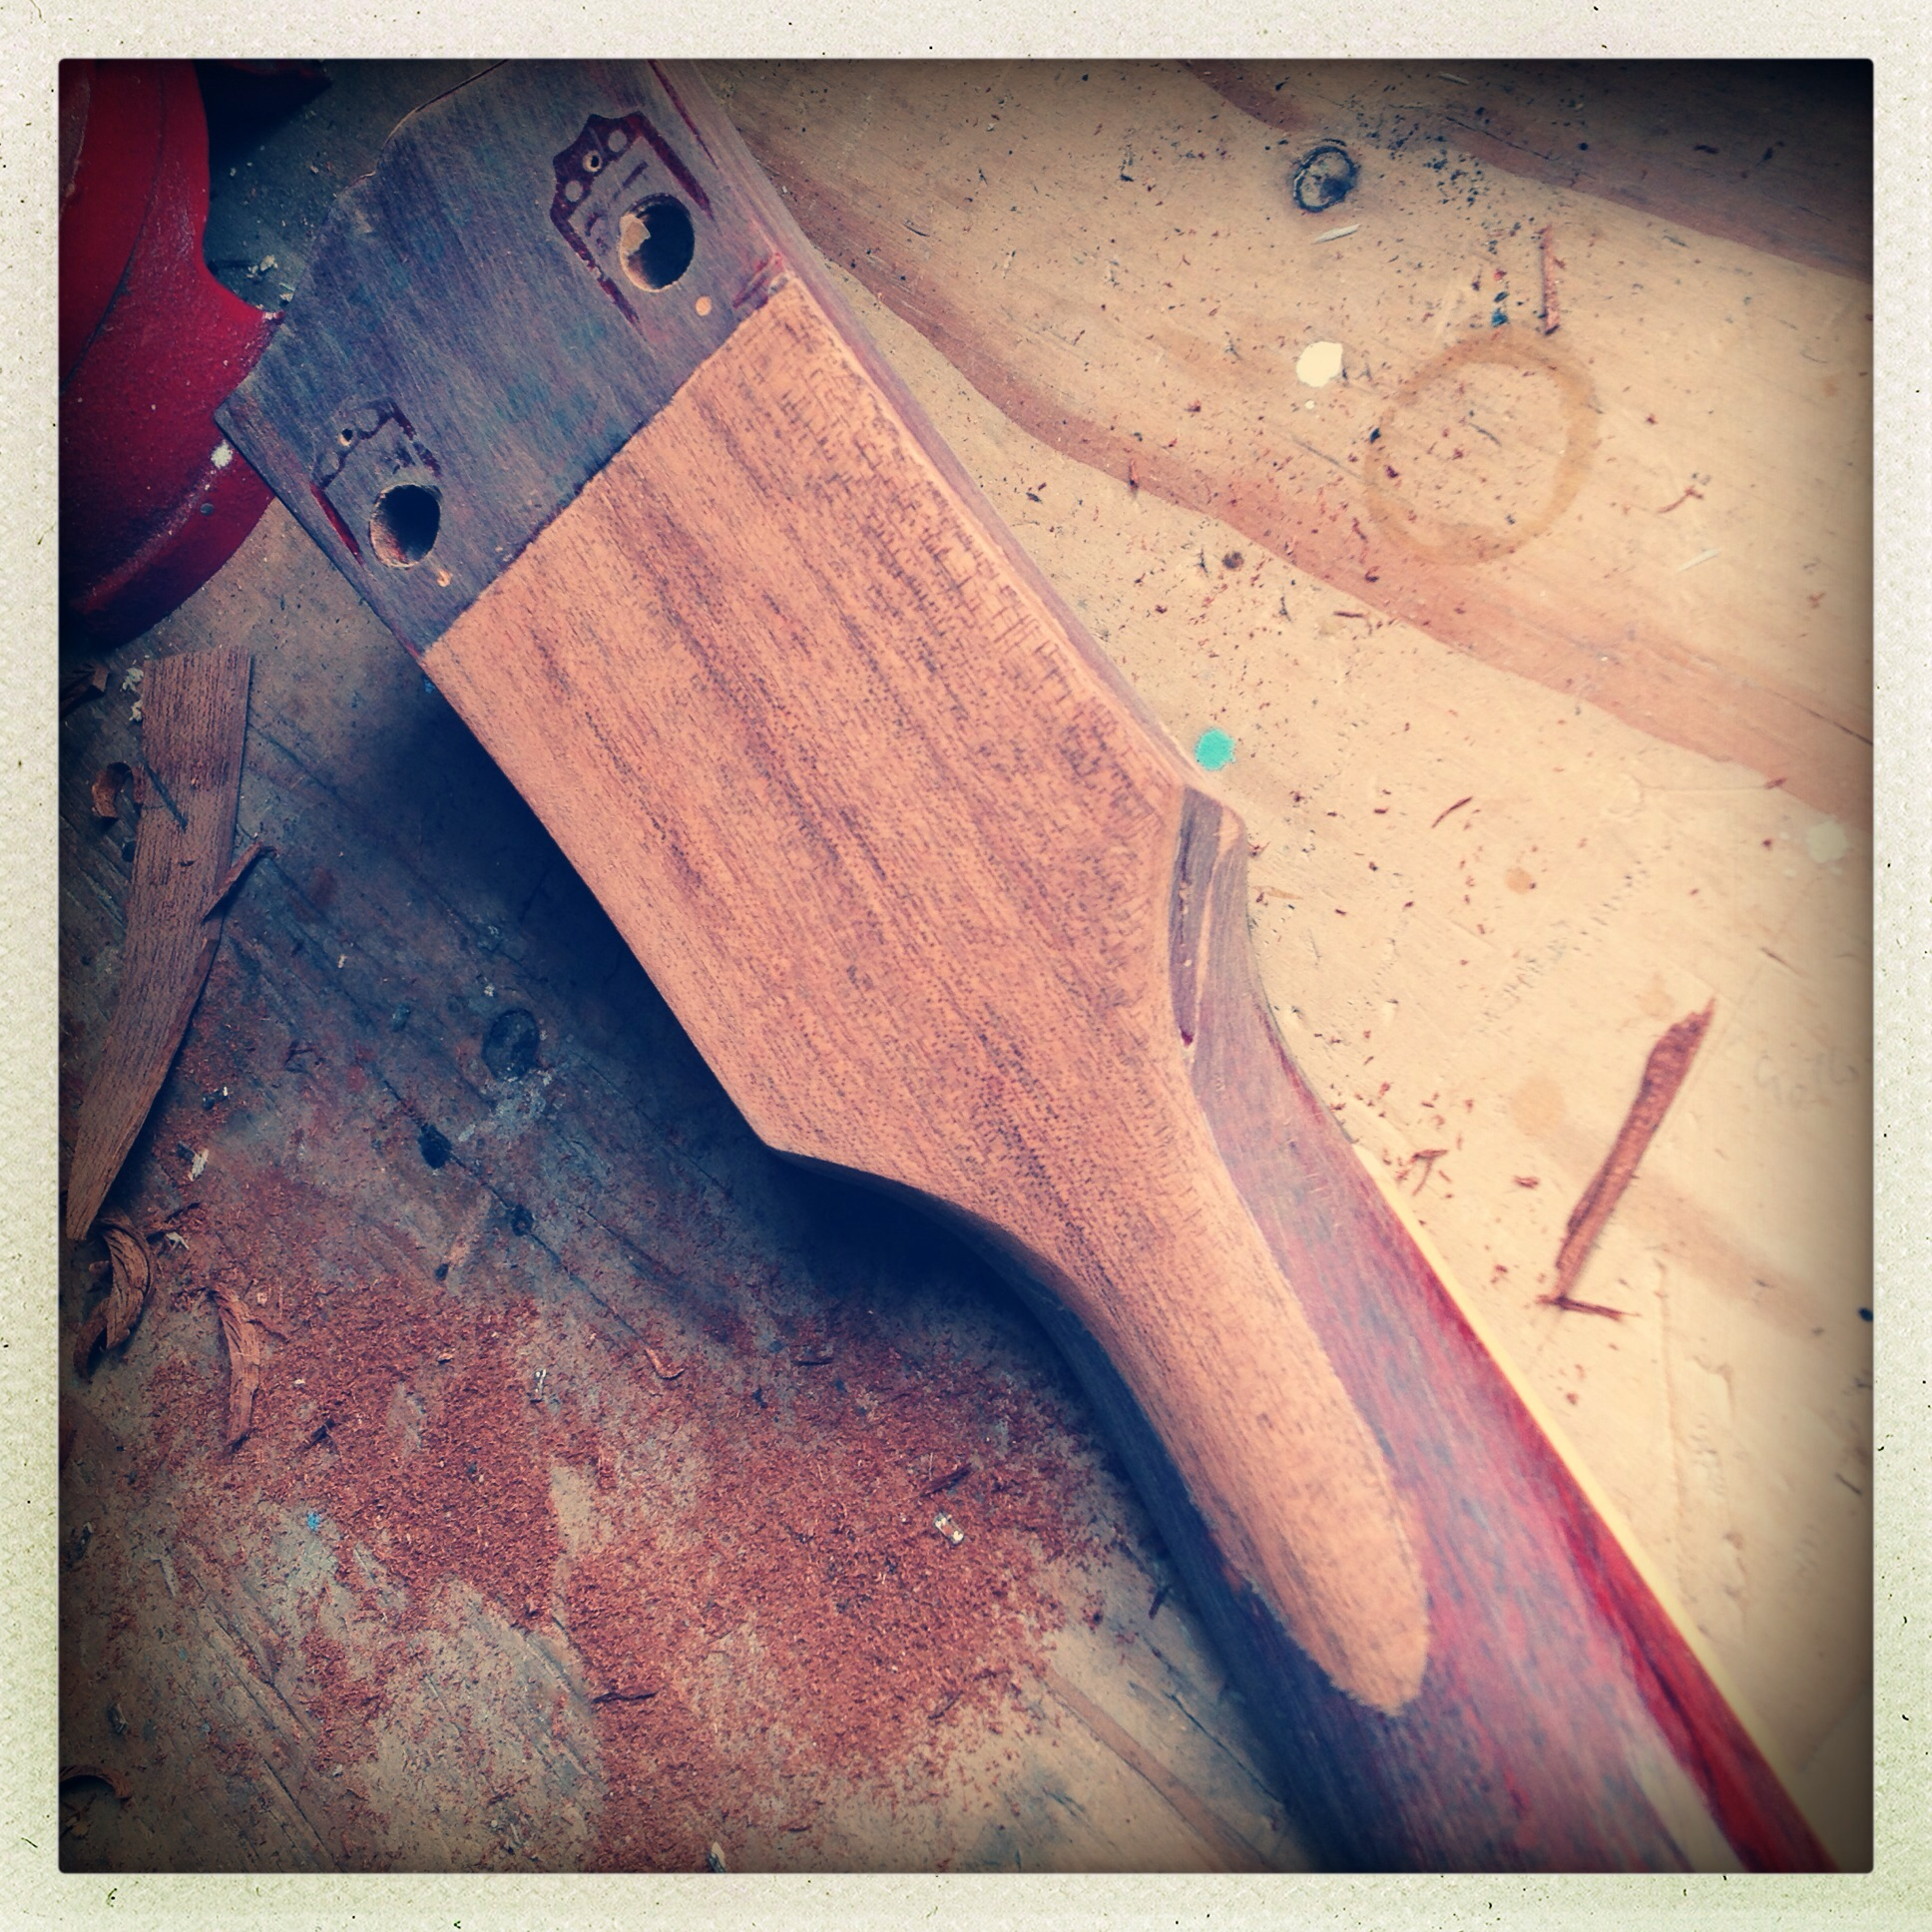 Newly inlaid wood cut to shape on headstock